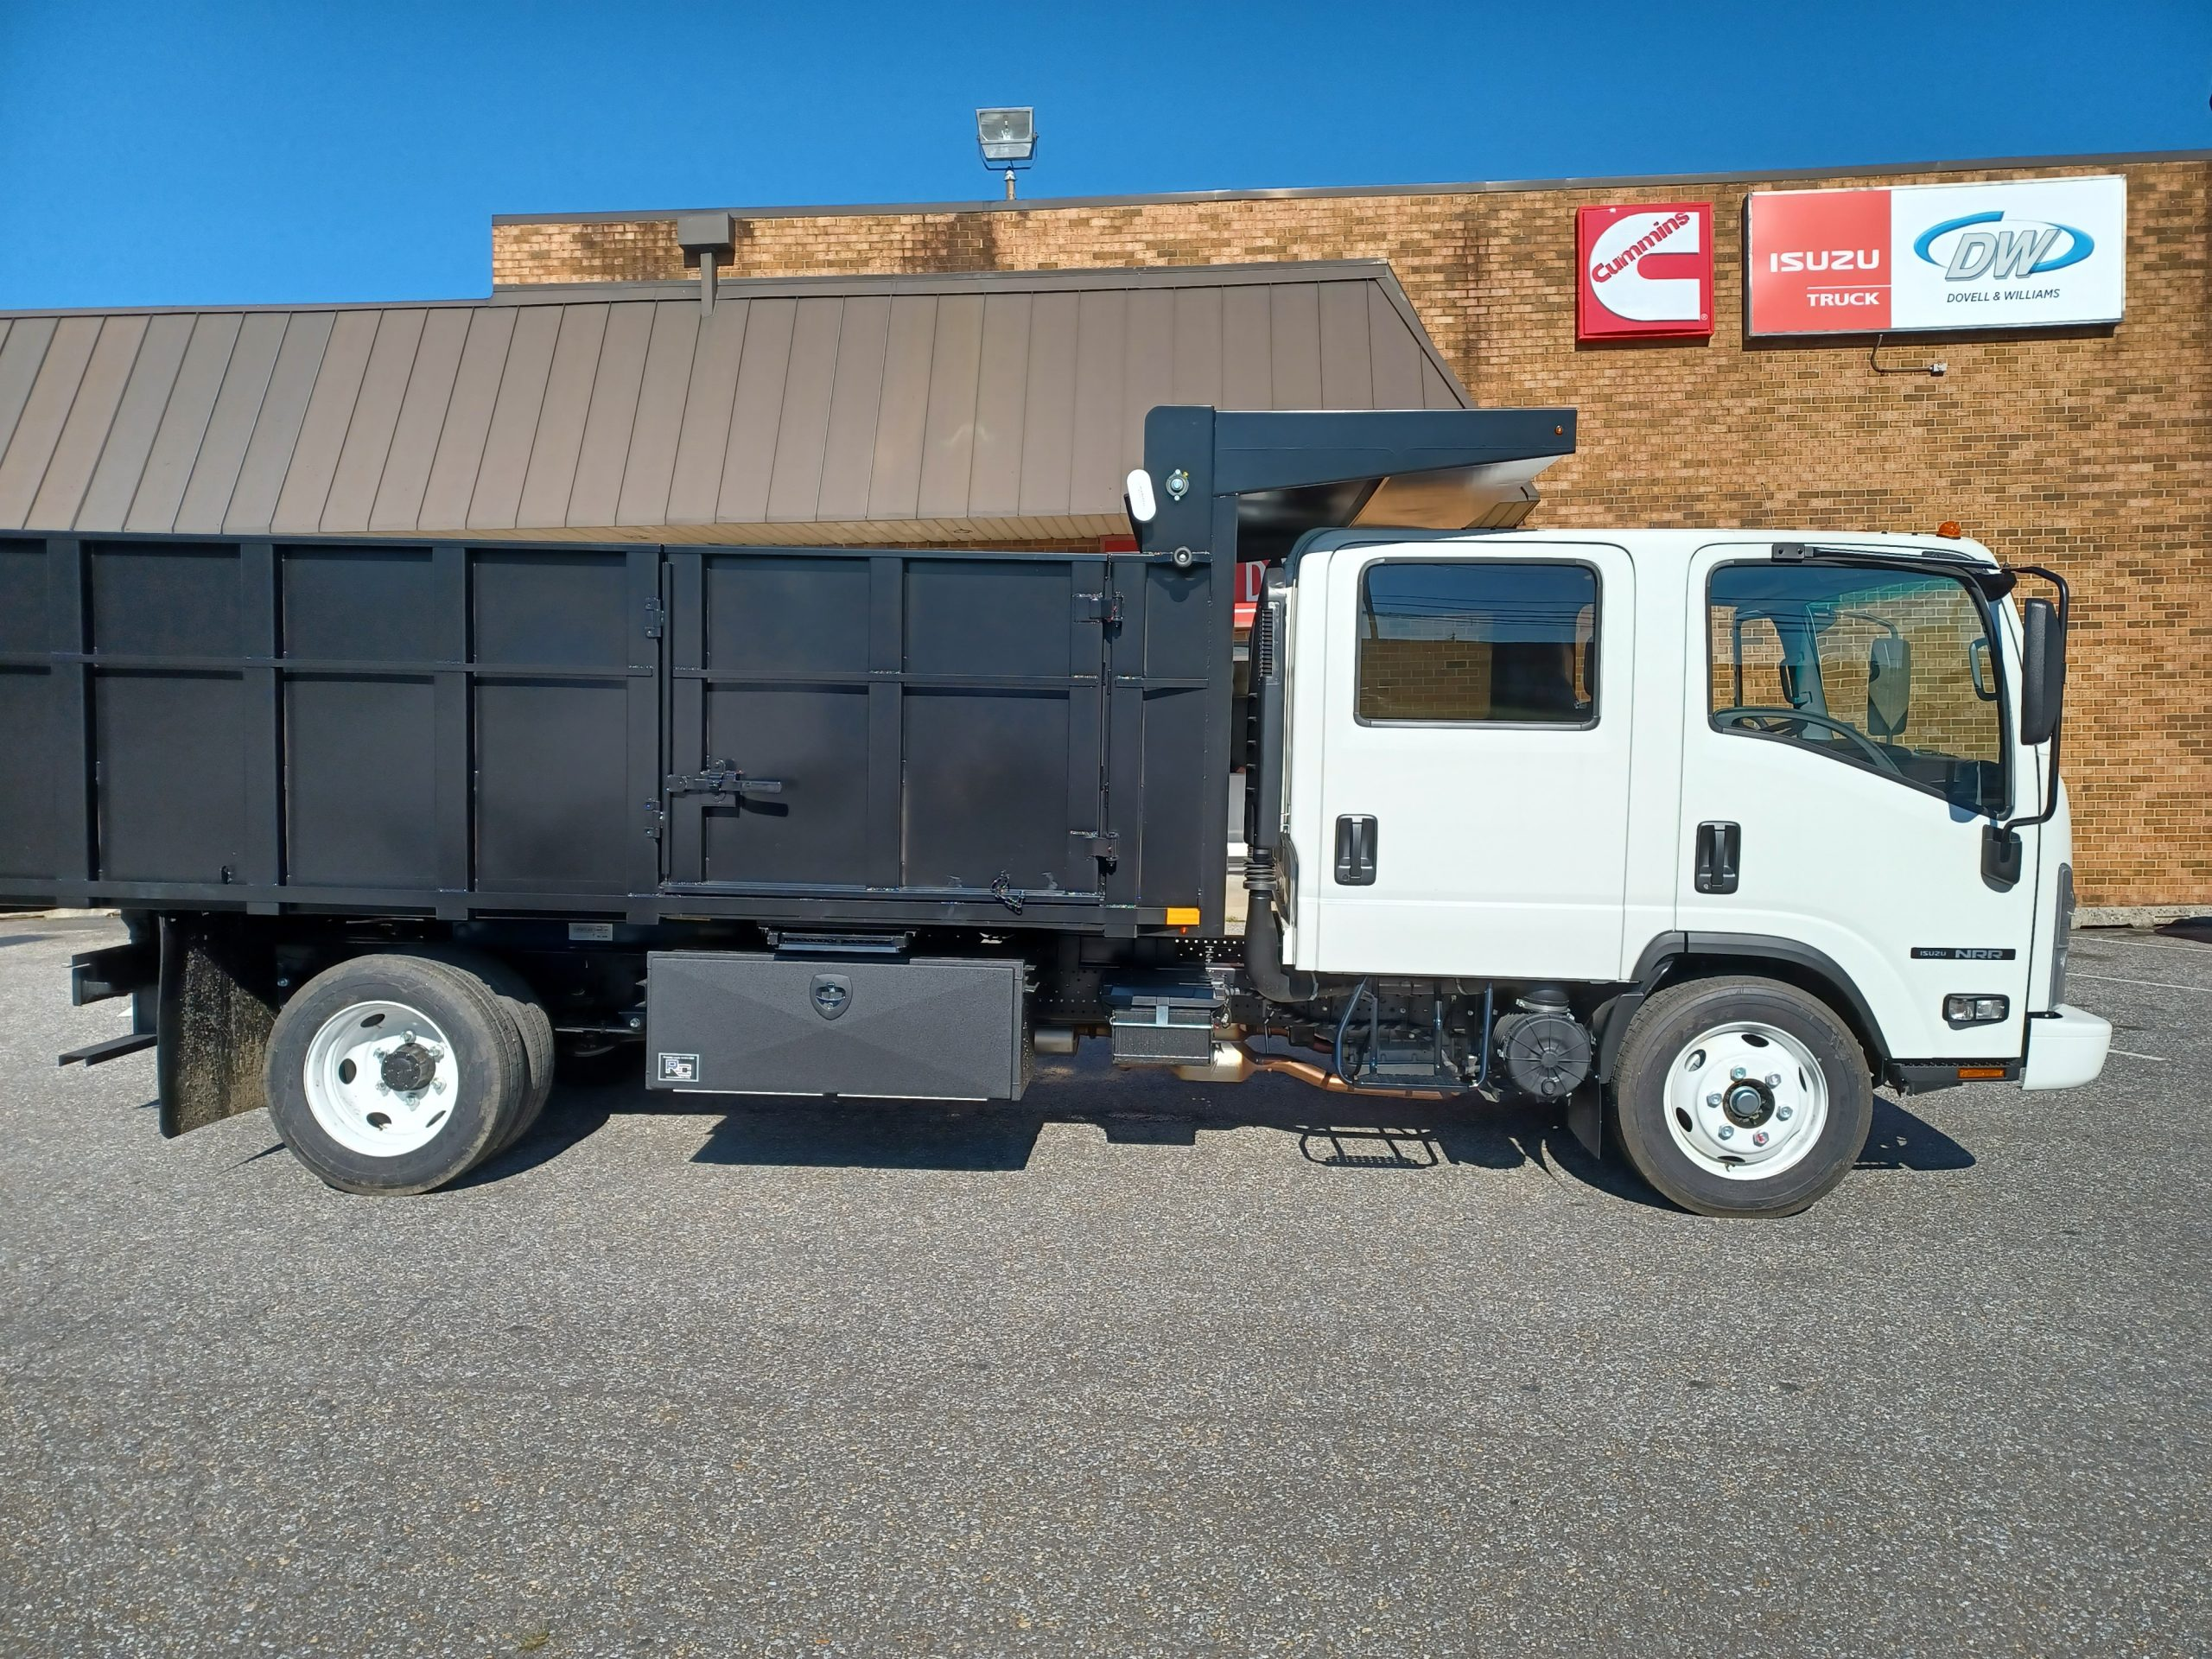 2021 NRR Dump Body 19500gvwr Gas Motor Payload of 8500lbs Crew Cab 7 passenger seating 20210903_092621-scaled